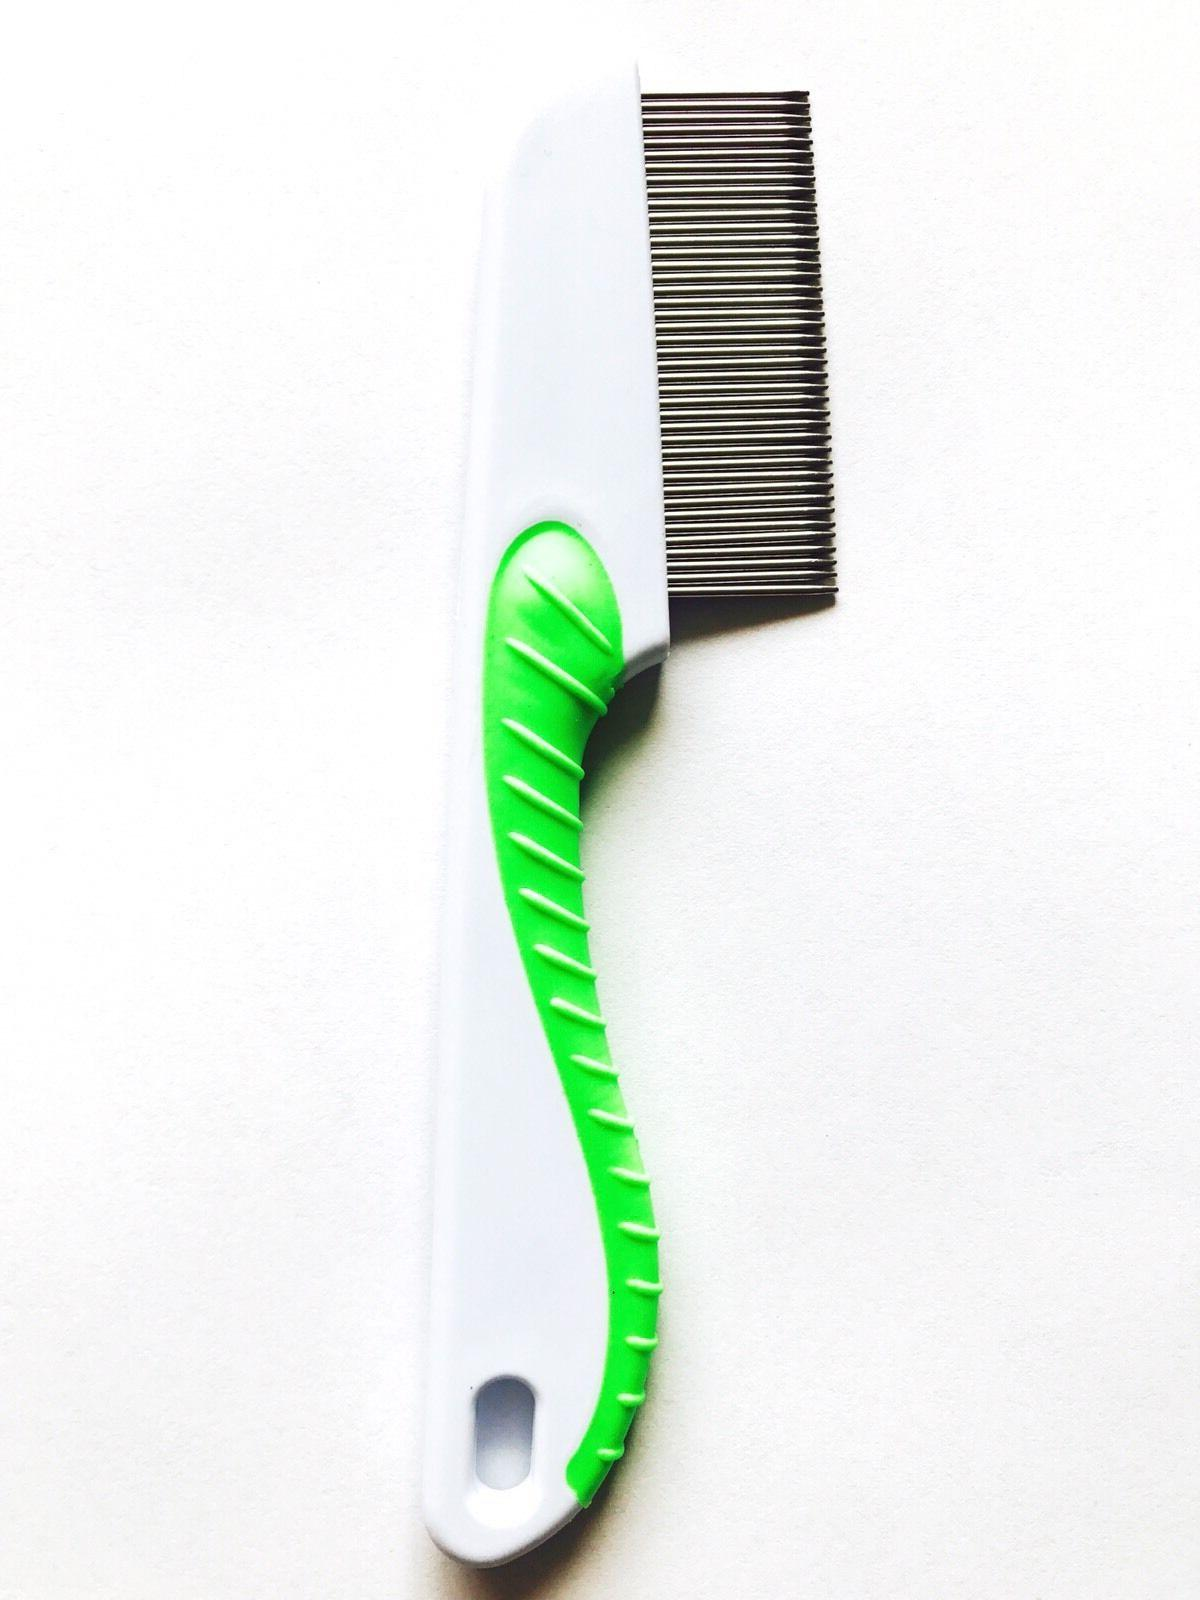 Stainless Lice Comb Ticks Kids Nit